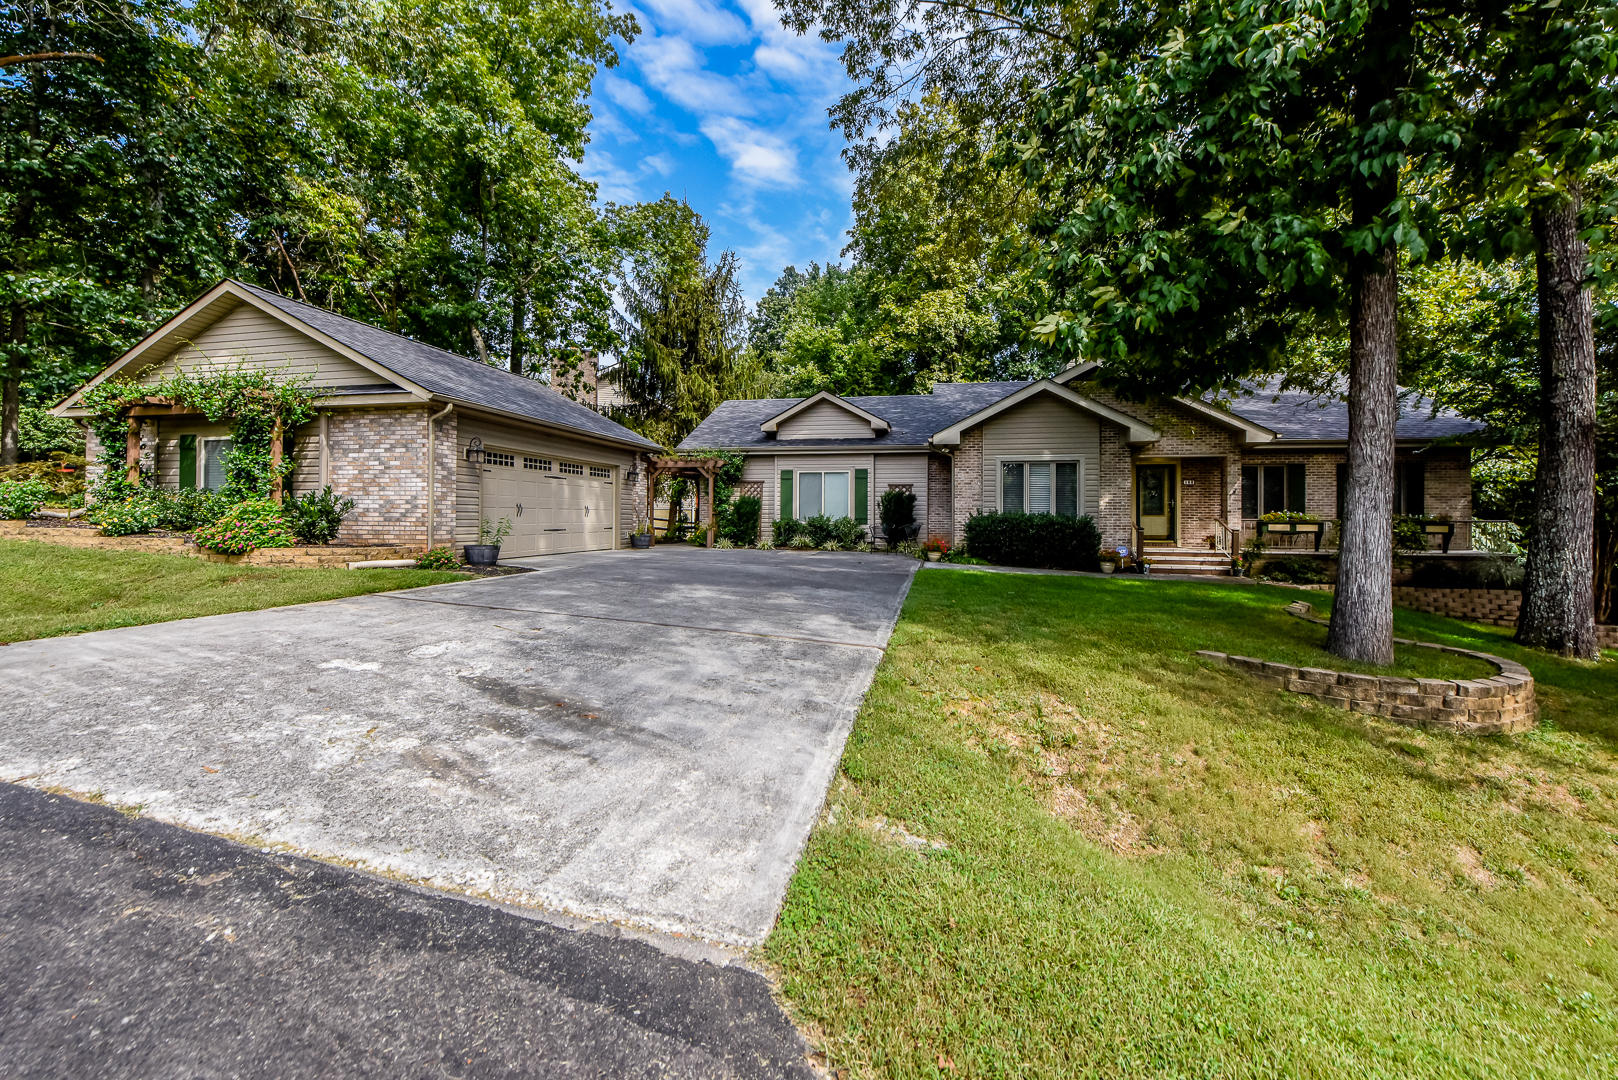 163 Cheeskogili Way, Loudon, TN 37774